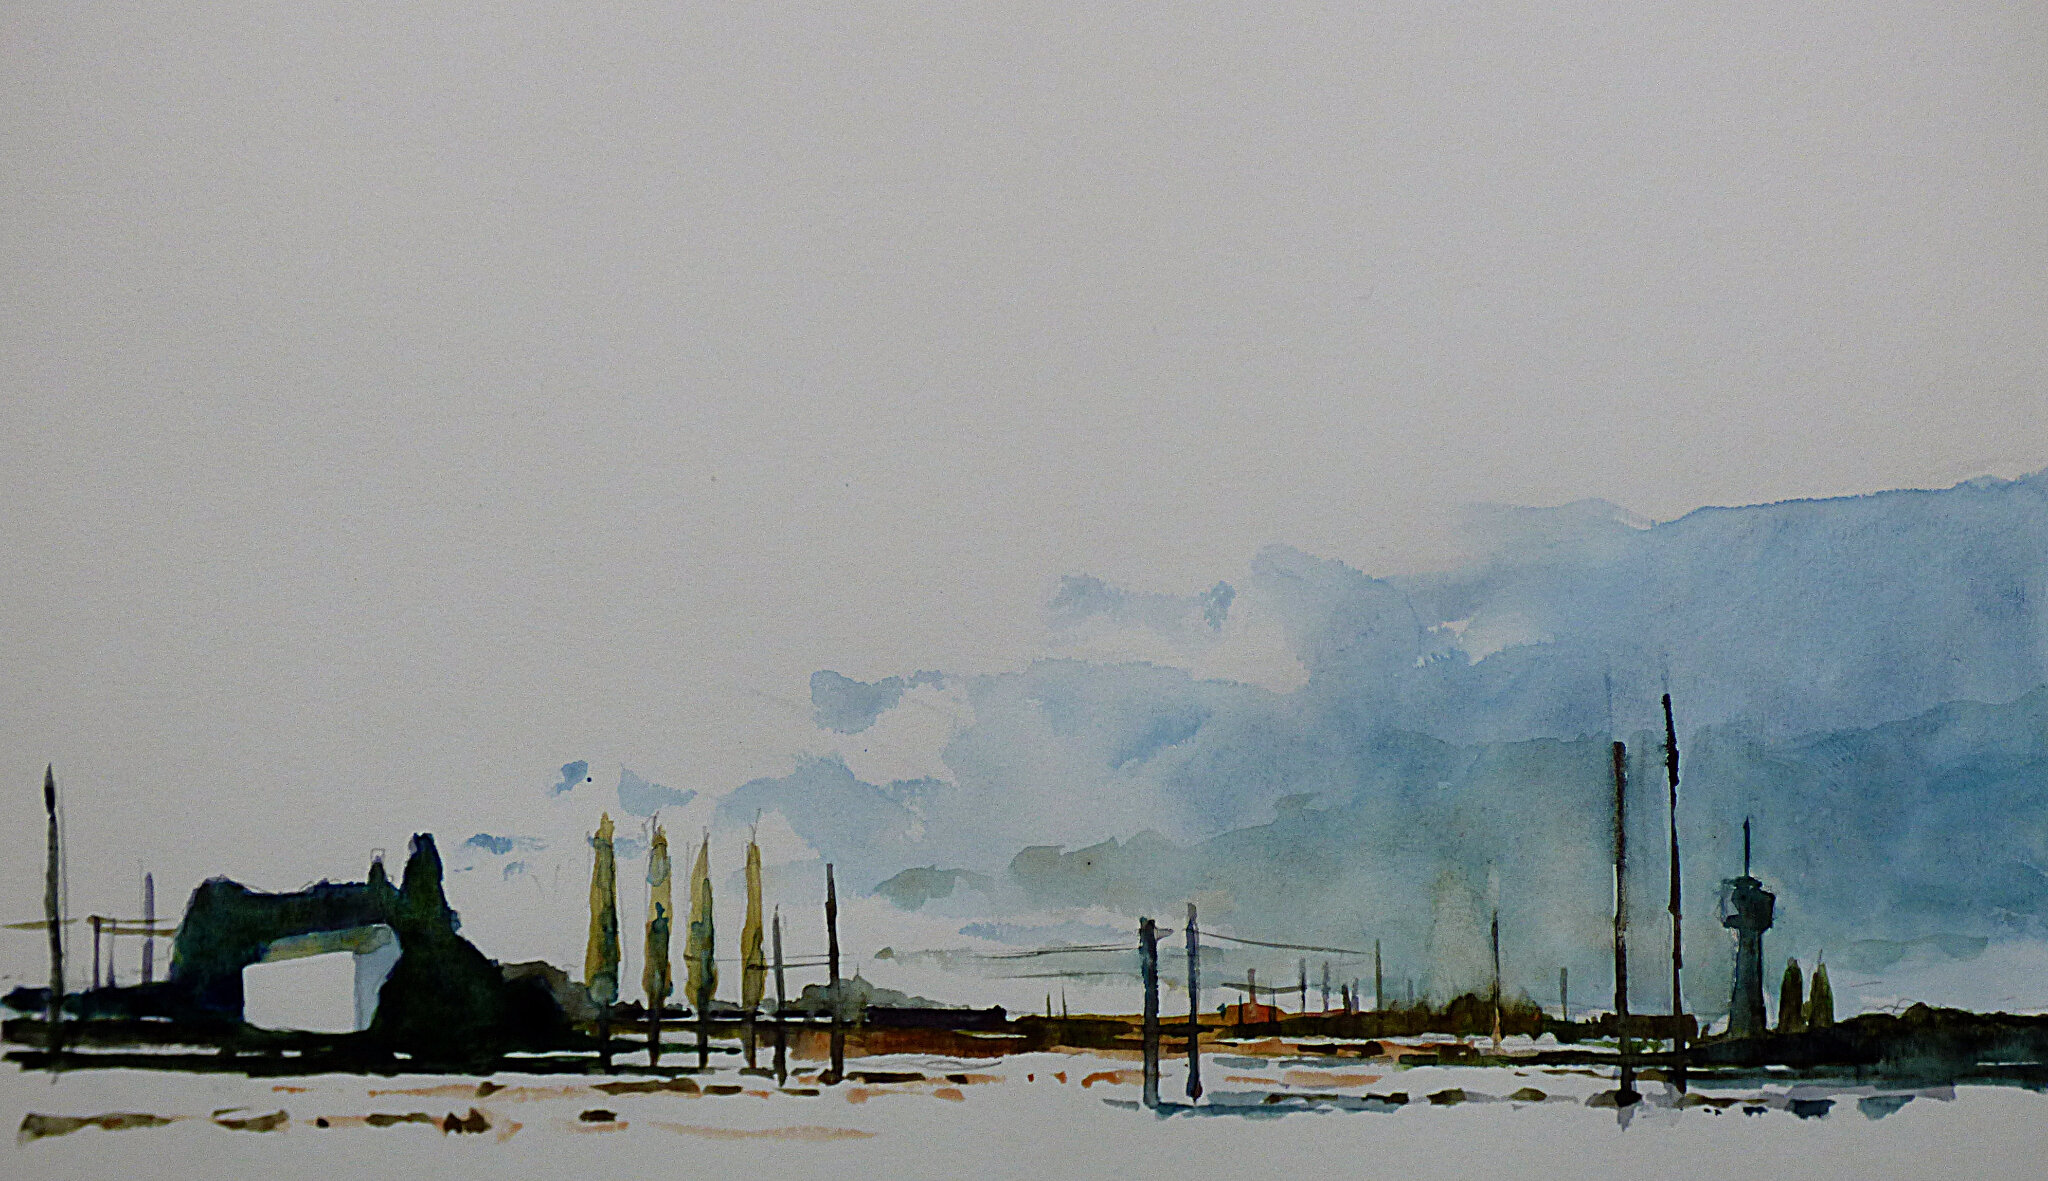 k nowhere 85, sept 2017, aquarelle, 41 x 25 cm